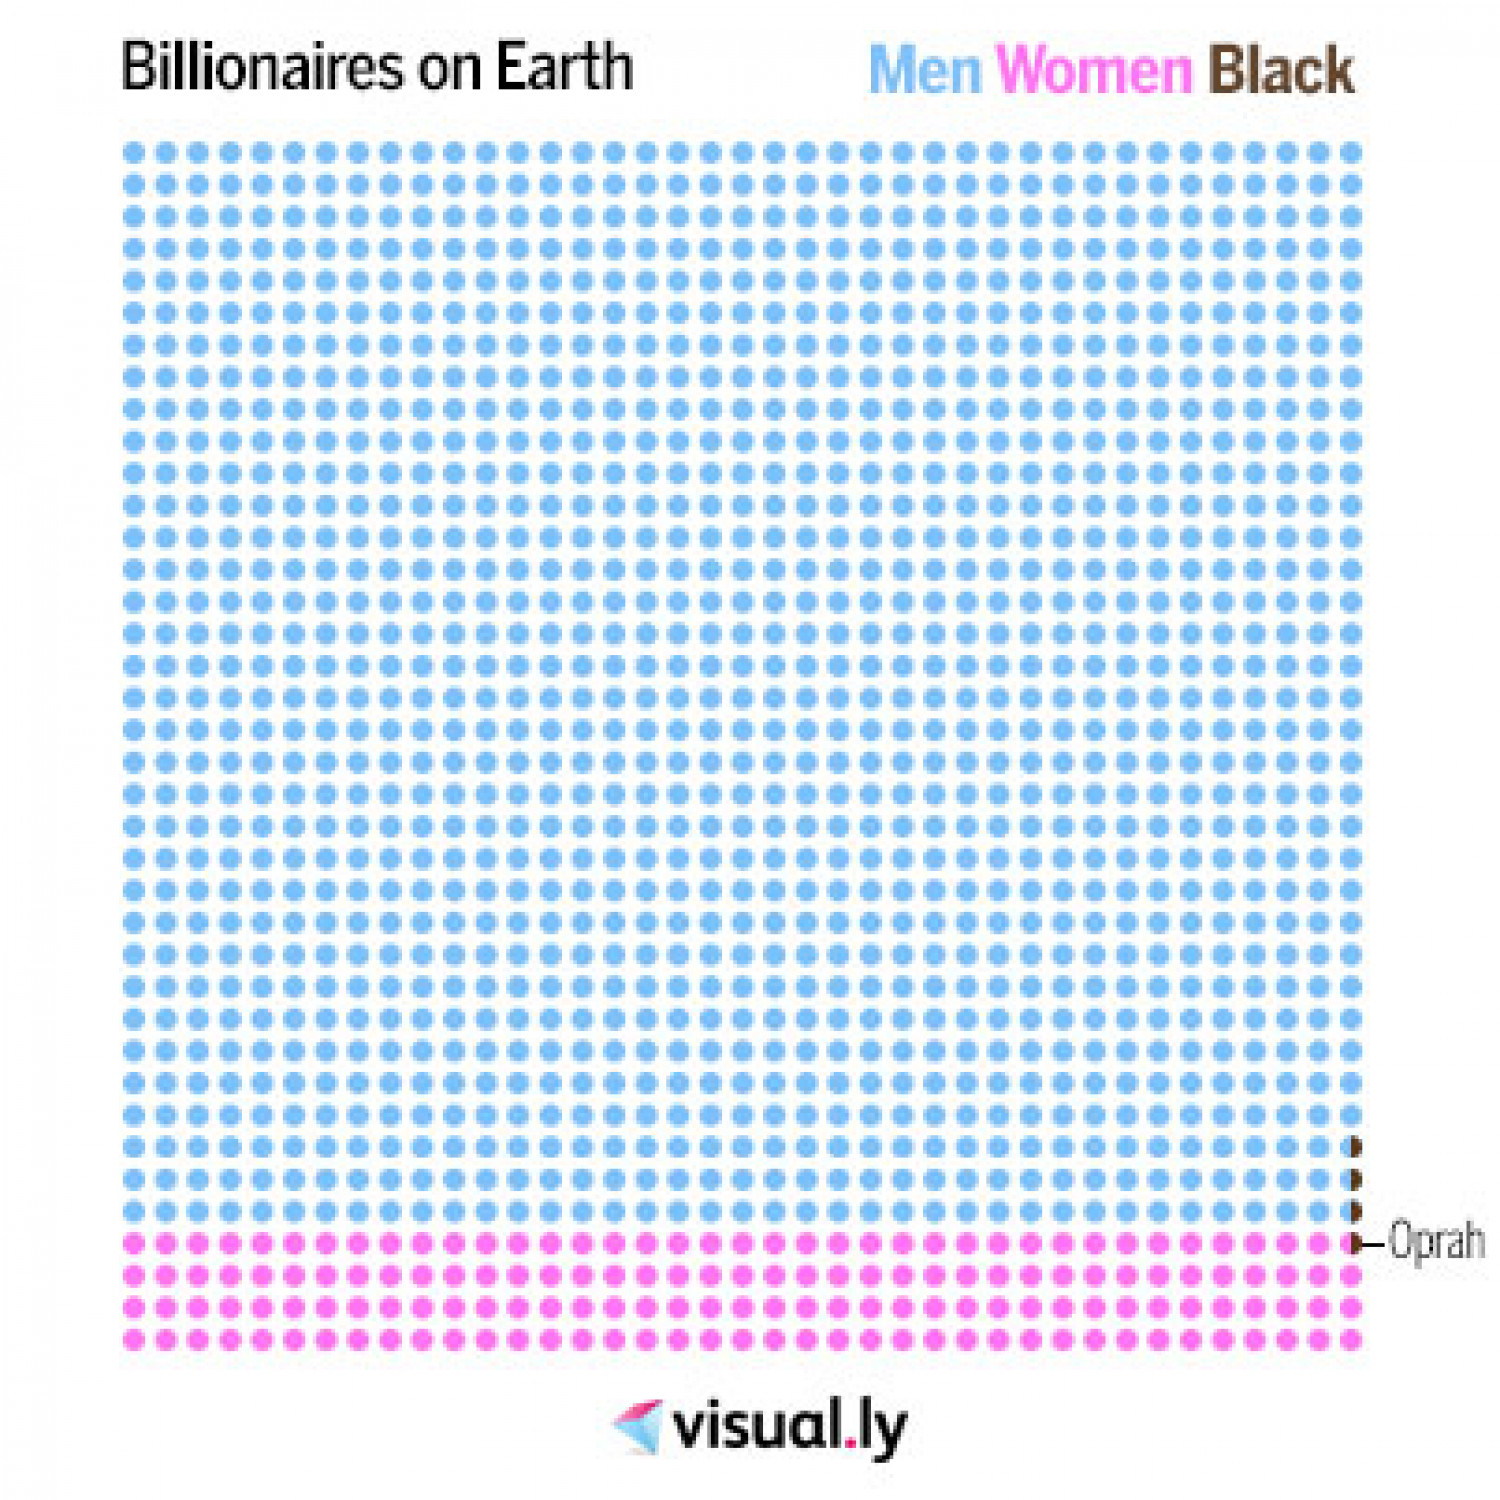 Billionaires on Earth Infographic